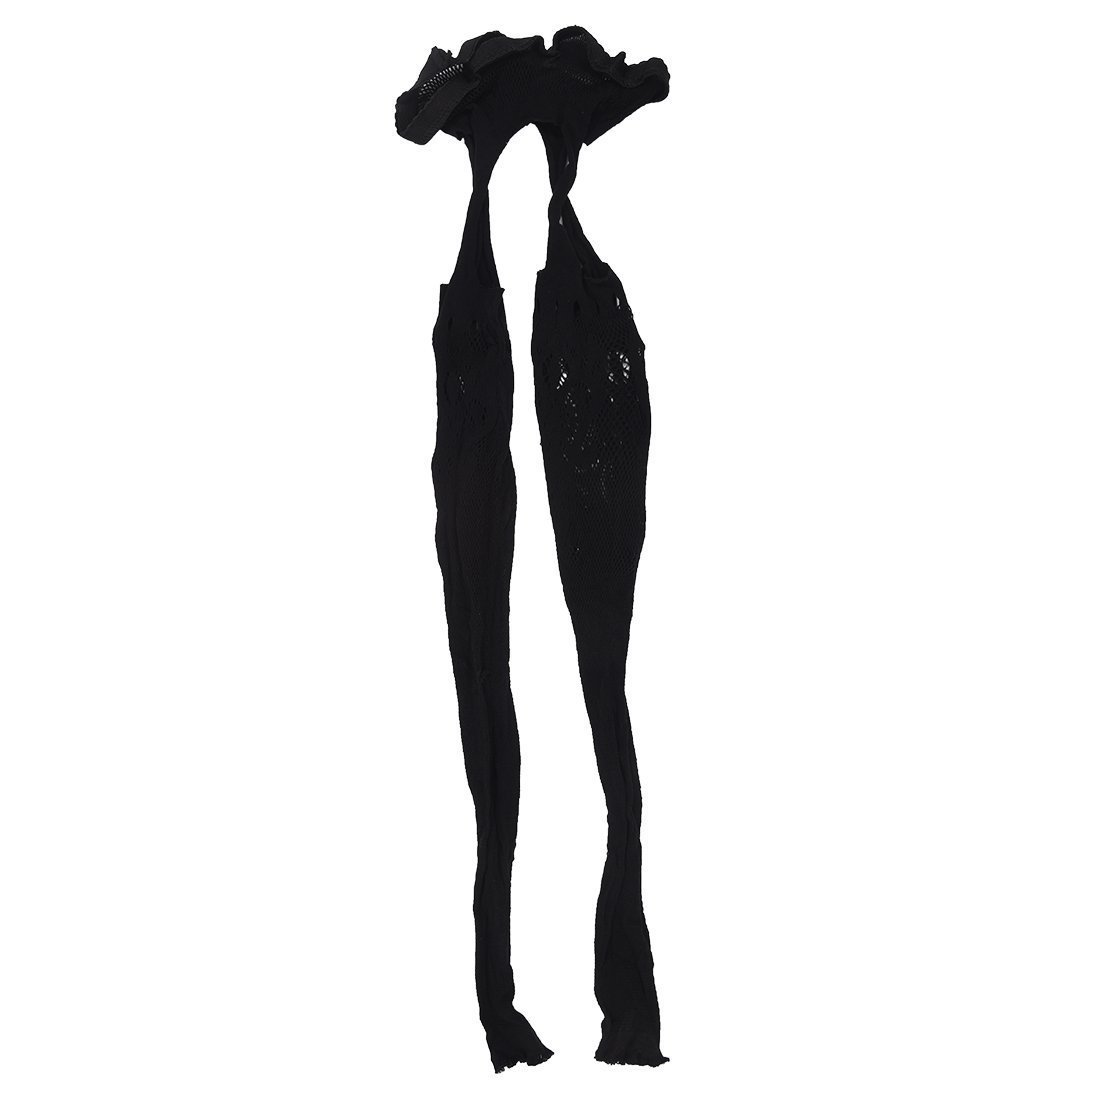 GQMART Women'S Sheer Sexy Lace Top Thigh-Highs Stockings Black